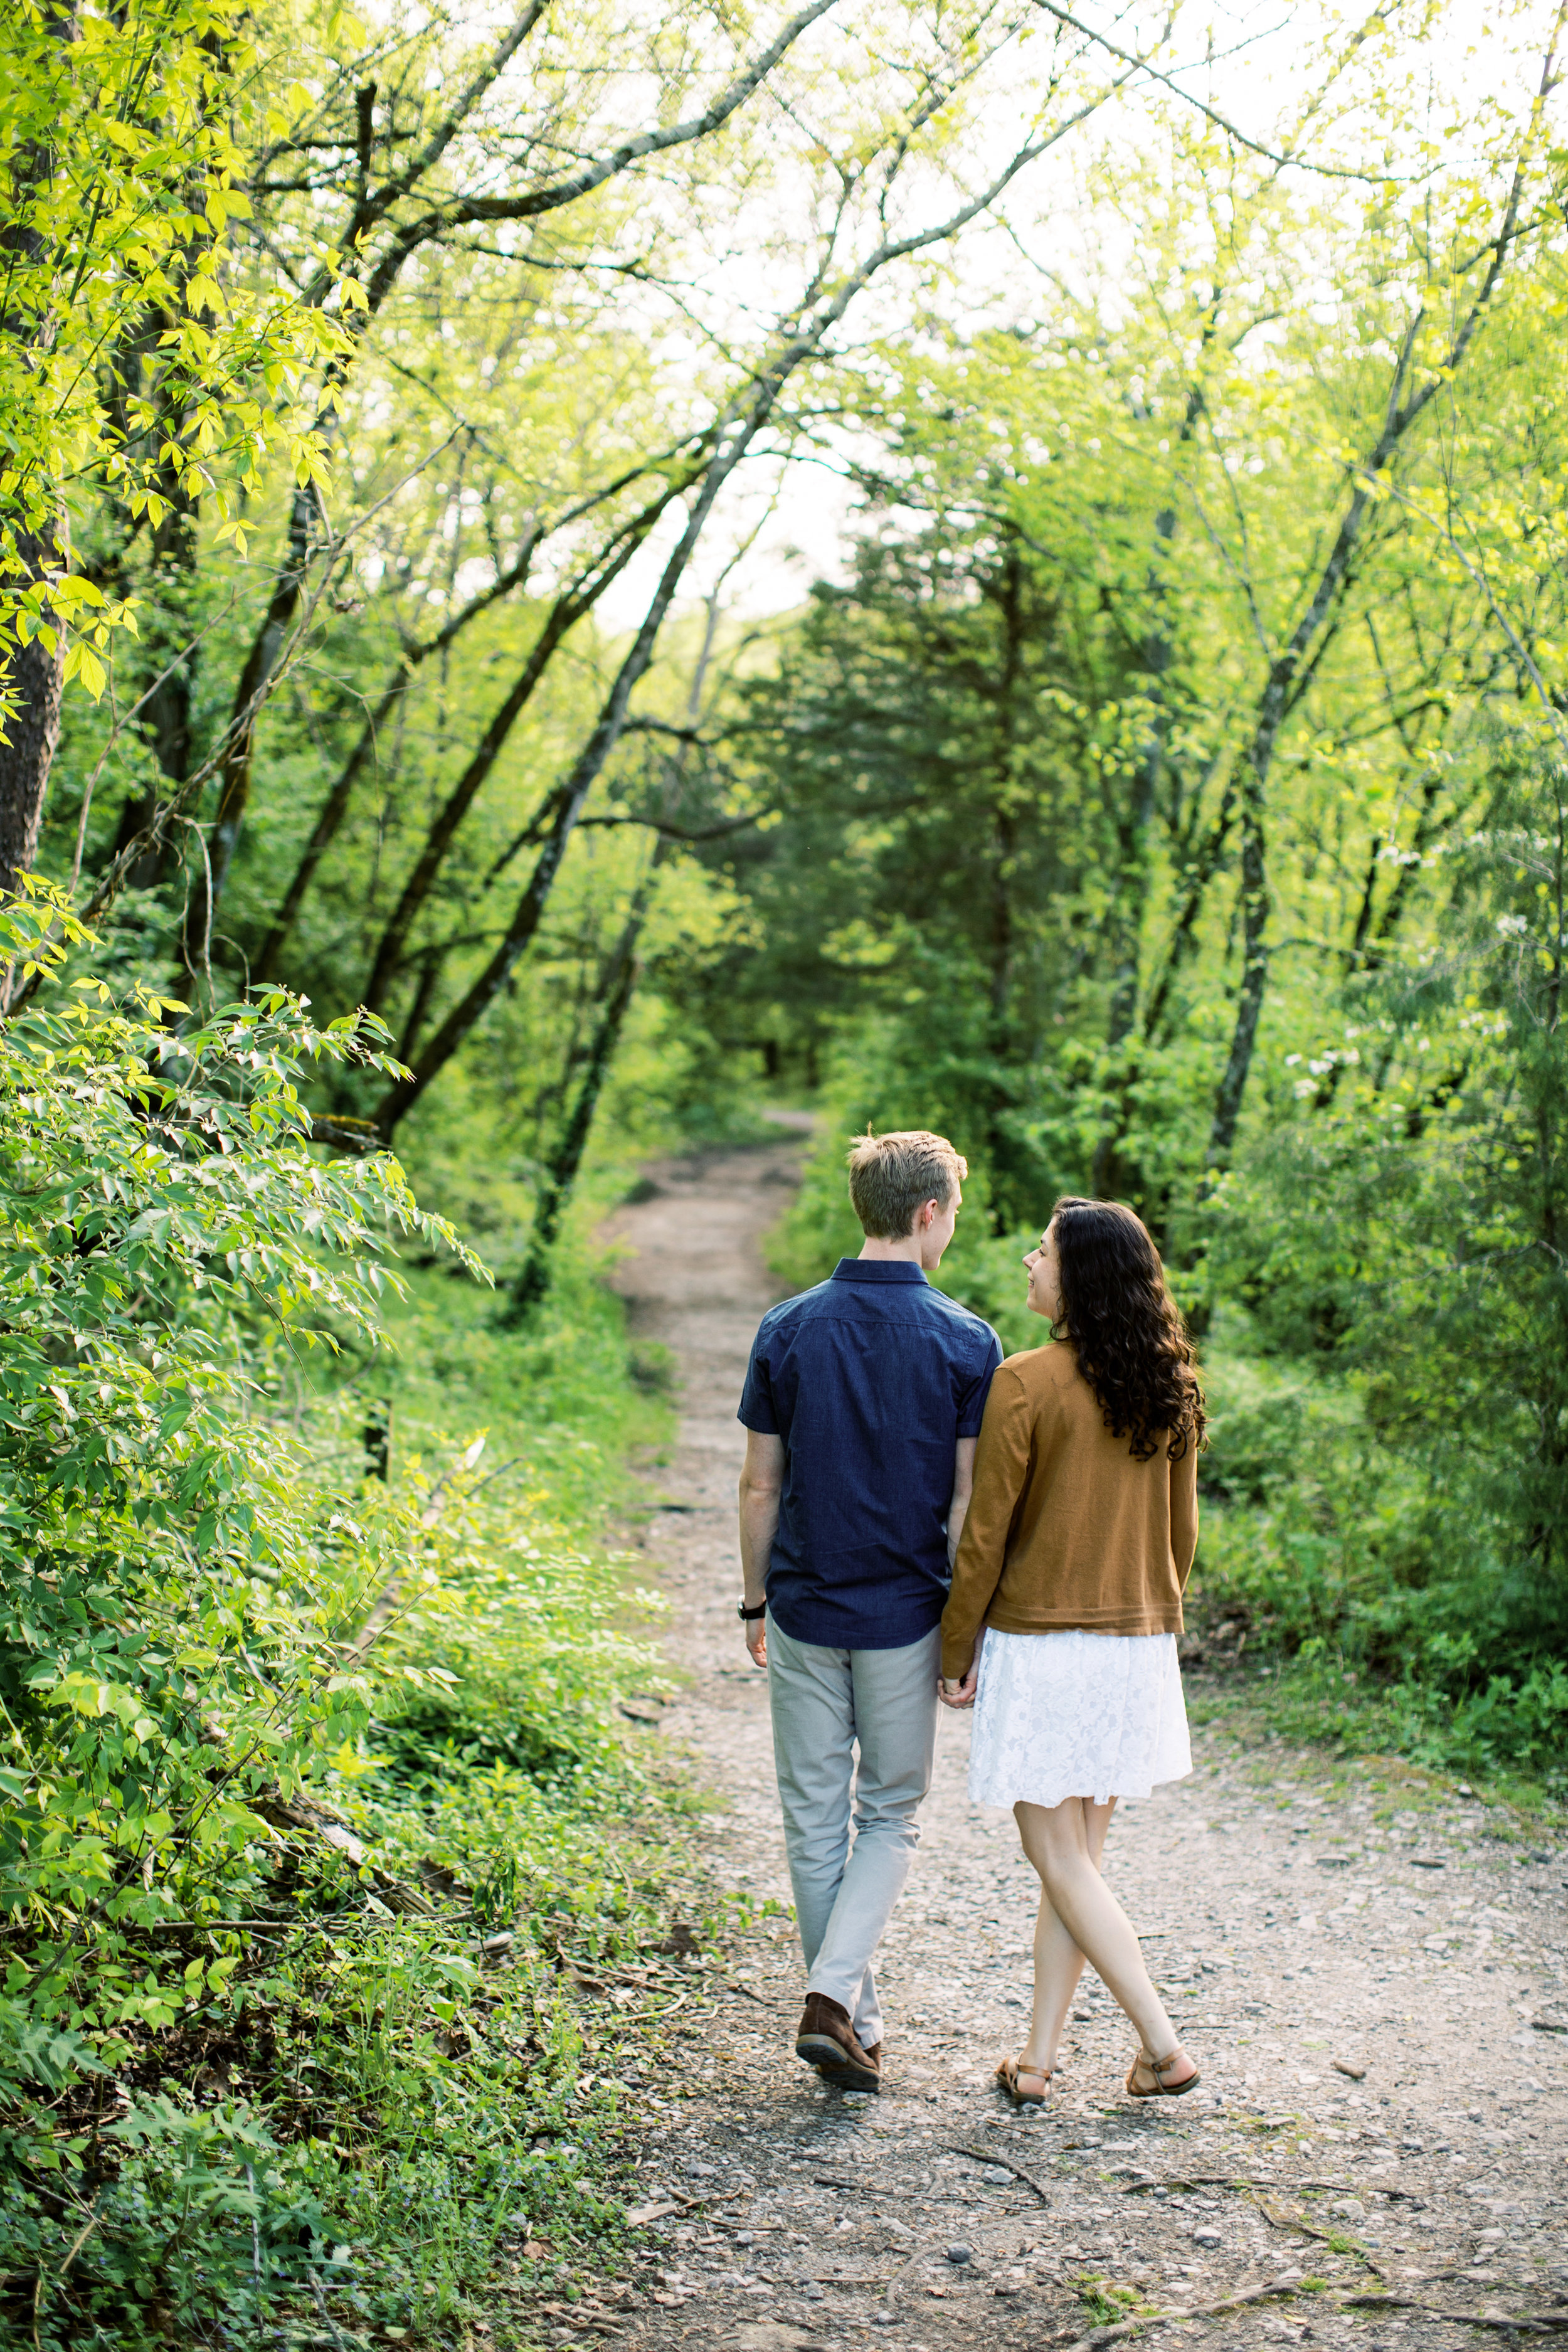 Ian_Sarah_Engagement_Knoxville_Abigail_malone_Photography-45.jpg